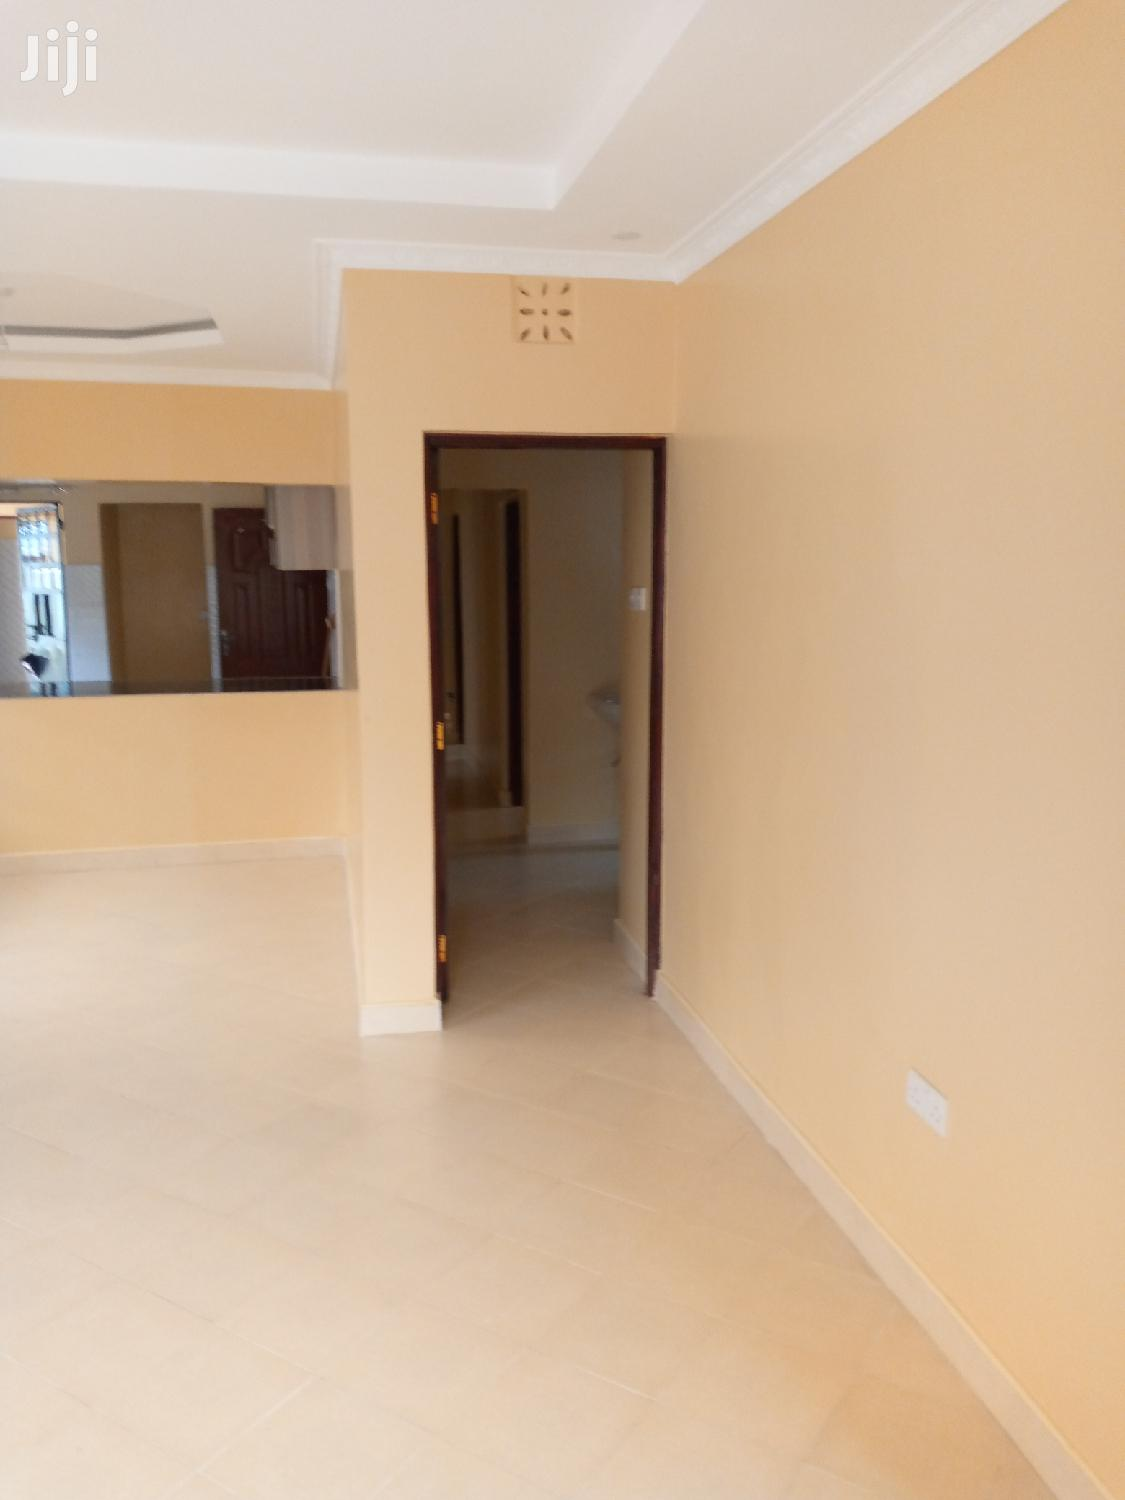 House For Sale In Nakuru Lanet | Houses & Apartments For Sale for sale in Nakuru East, Nakuru, Kenya